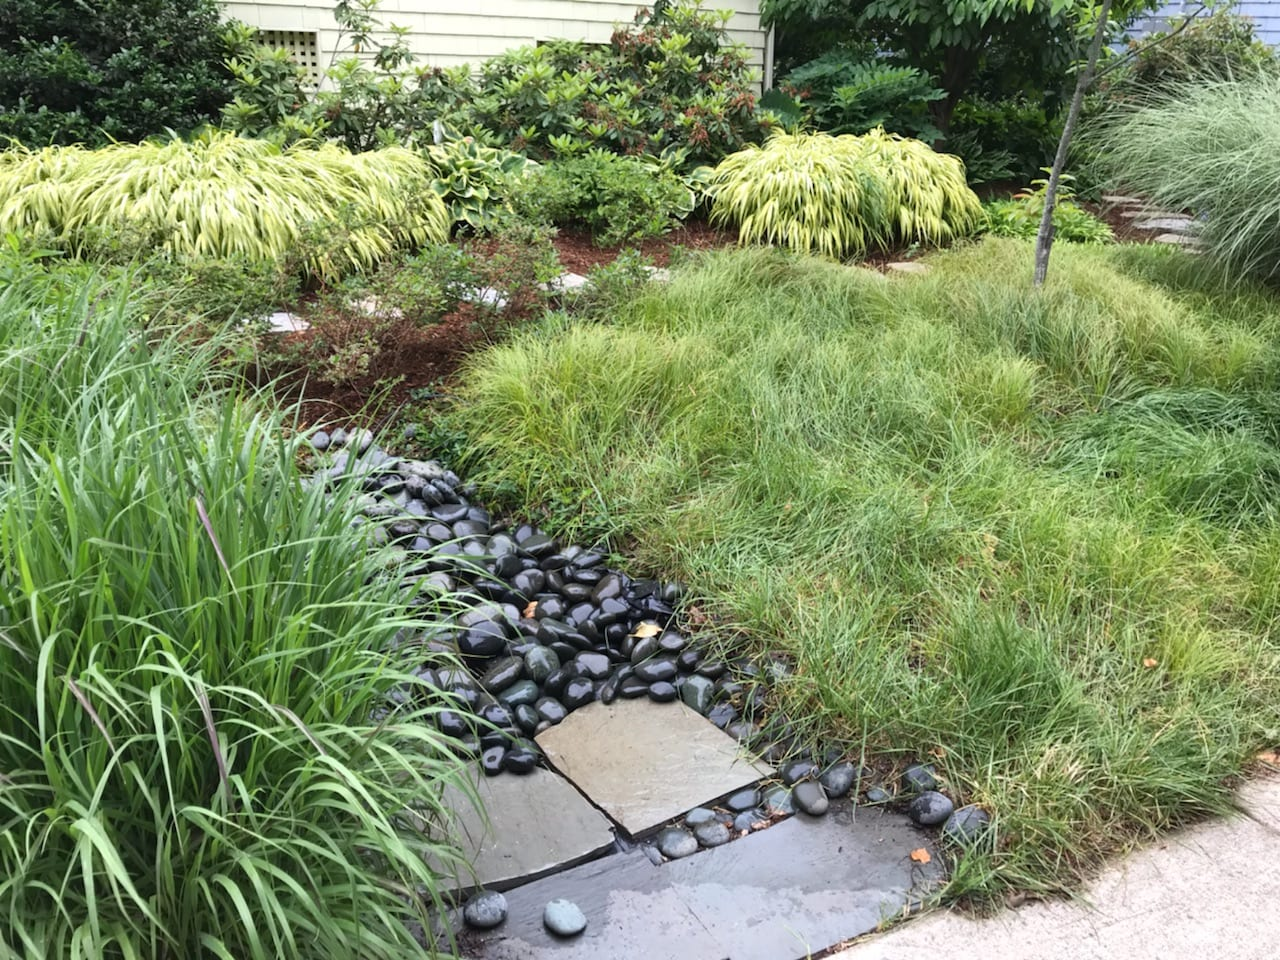 Delve into the fundamentals of sustainable landscape design. This course  will provide an overview exploration into the fundamentals of landscape  design that ... - Class: Sustainable Site Design Basics - Ecological Landscape Alliance